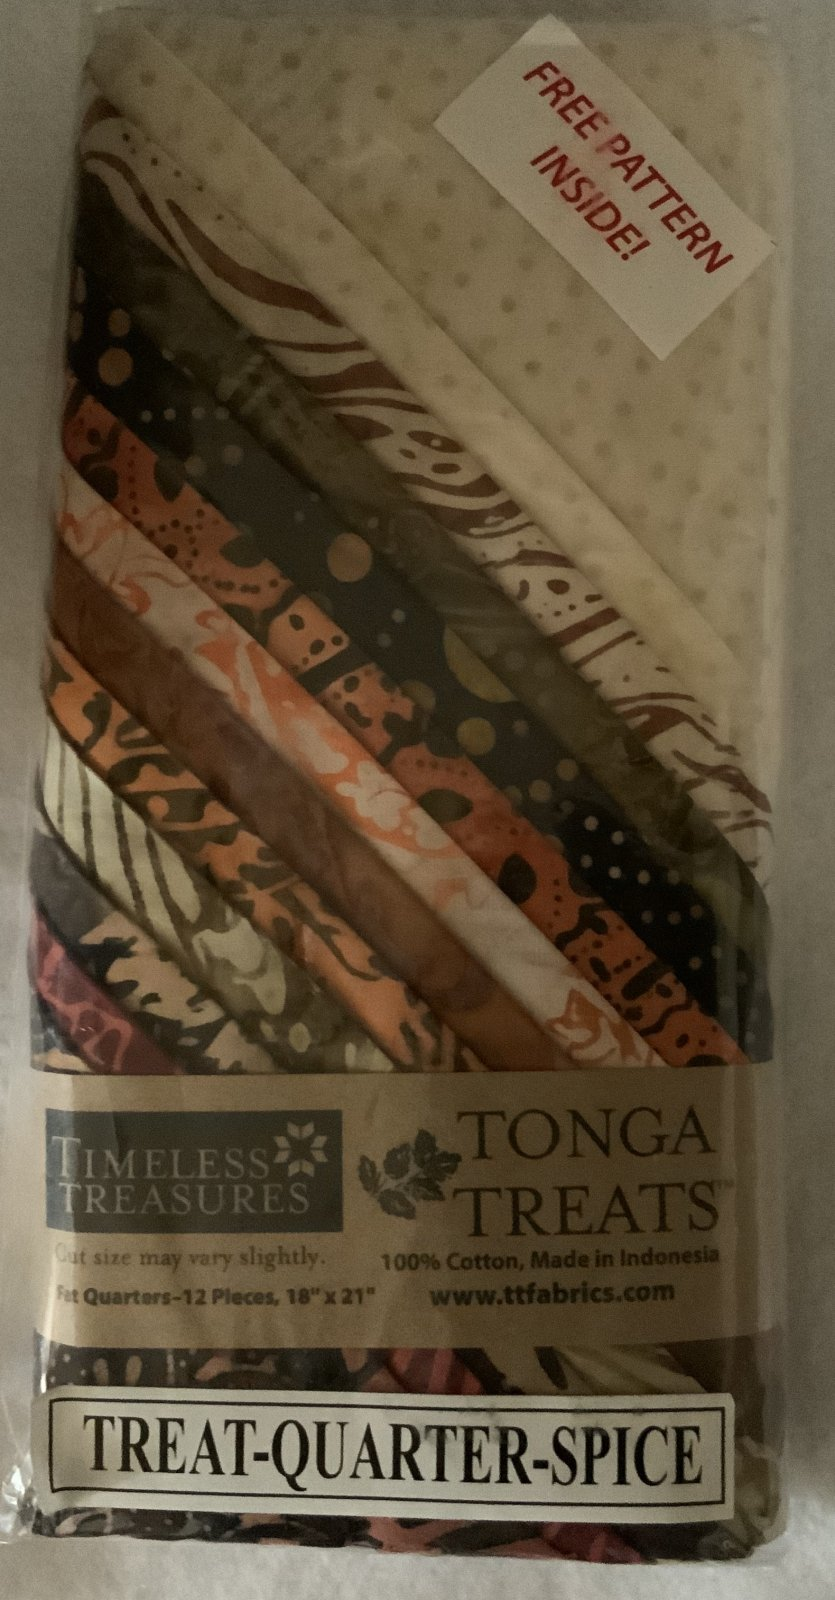 Tonga Treat Fat Quarters Spice (18in x 21in) 12pcs - Timeless Treasures